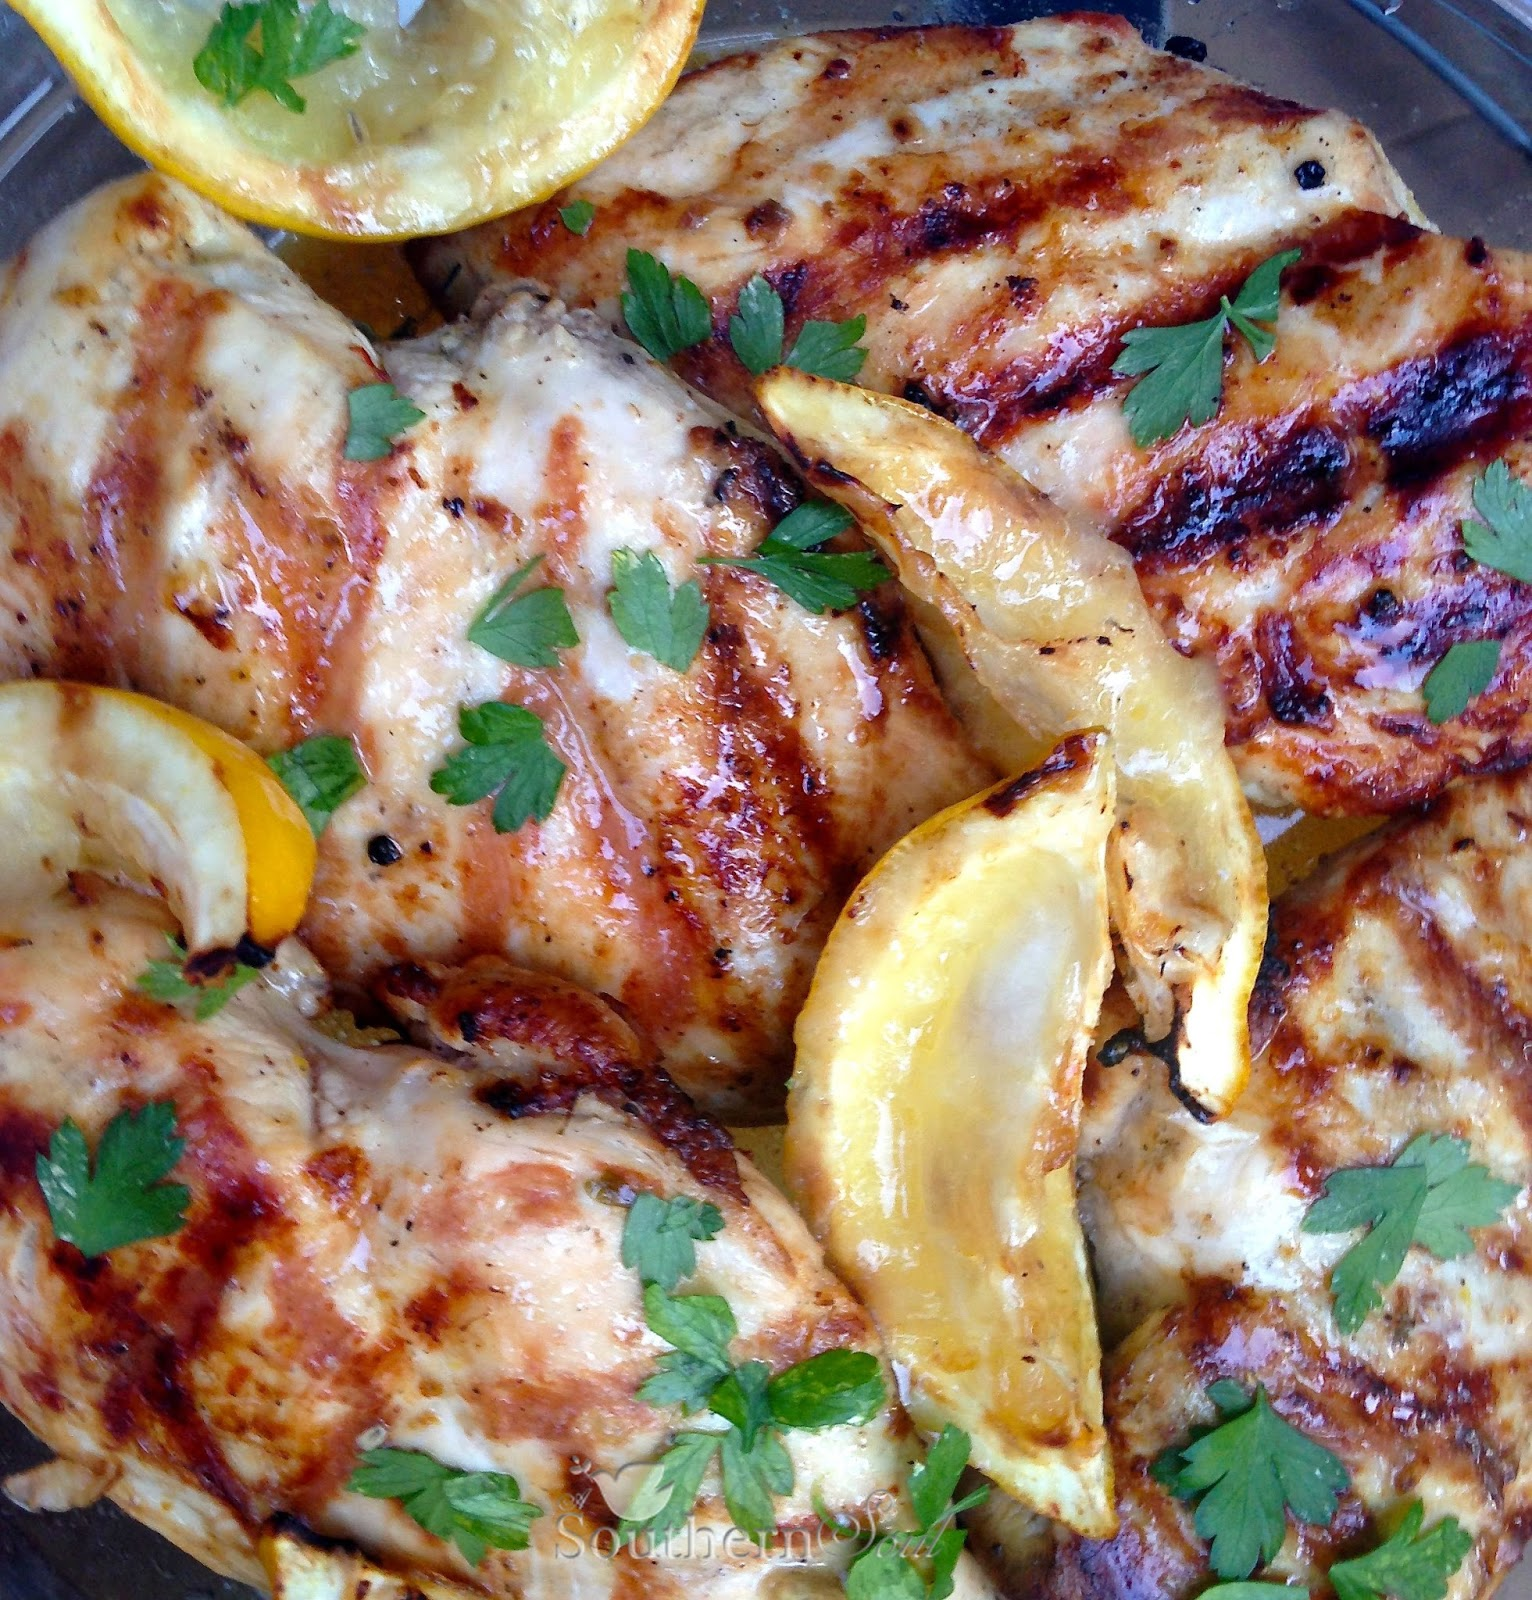 Southern Soul: Grilled Lemon Chicken